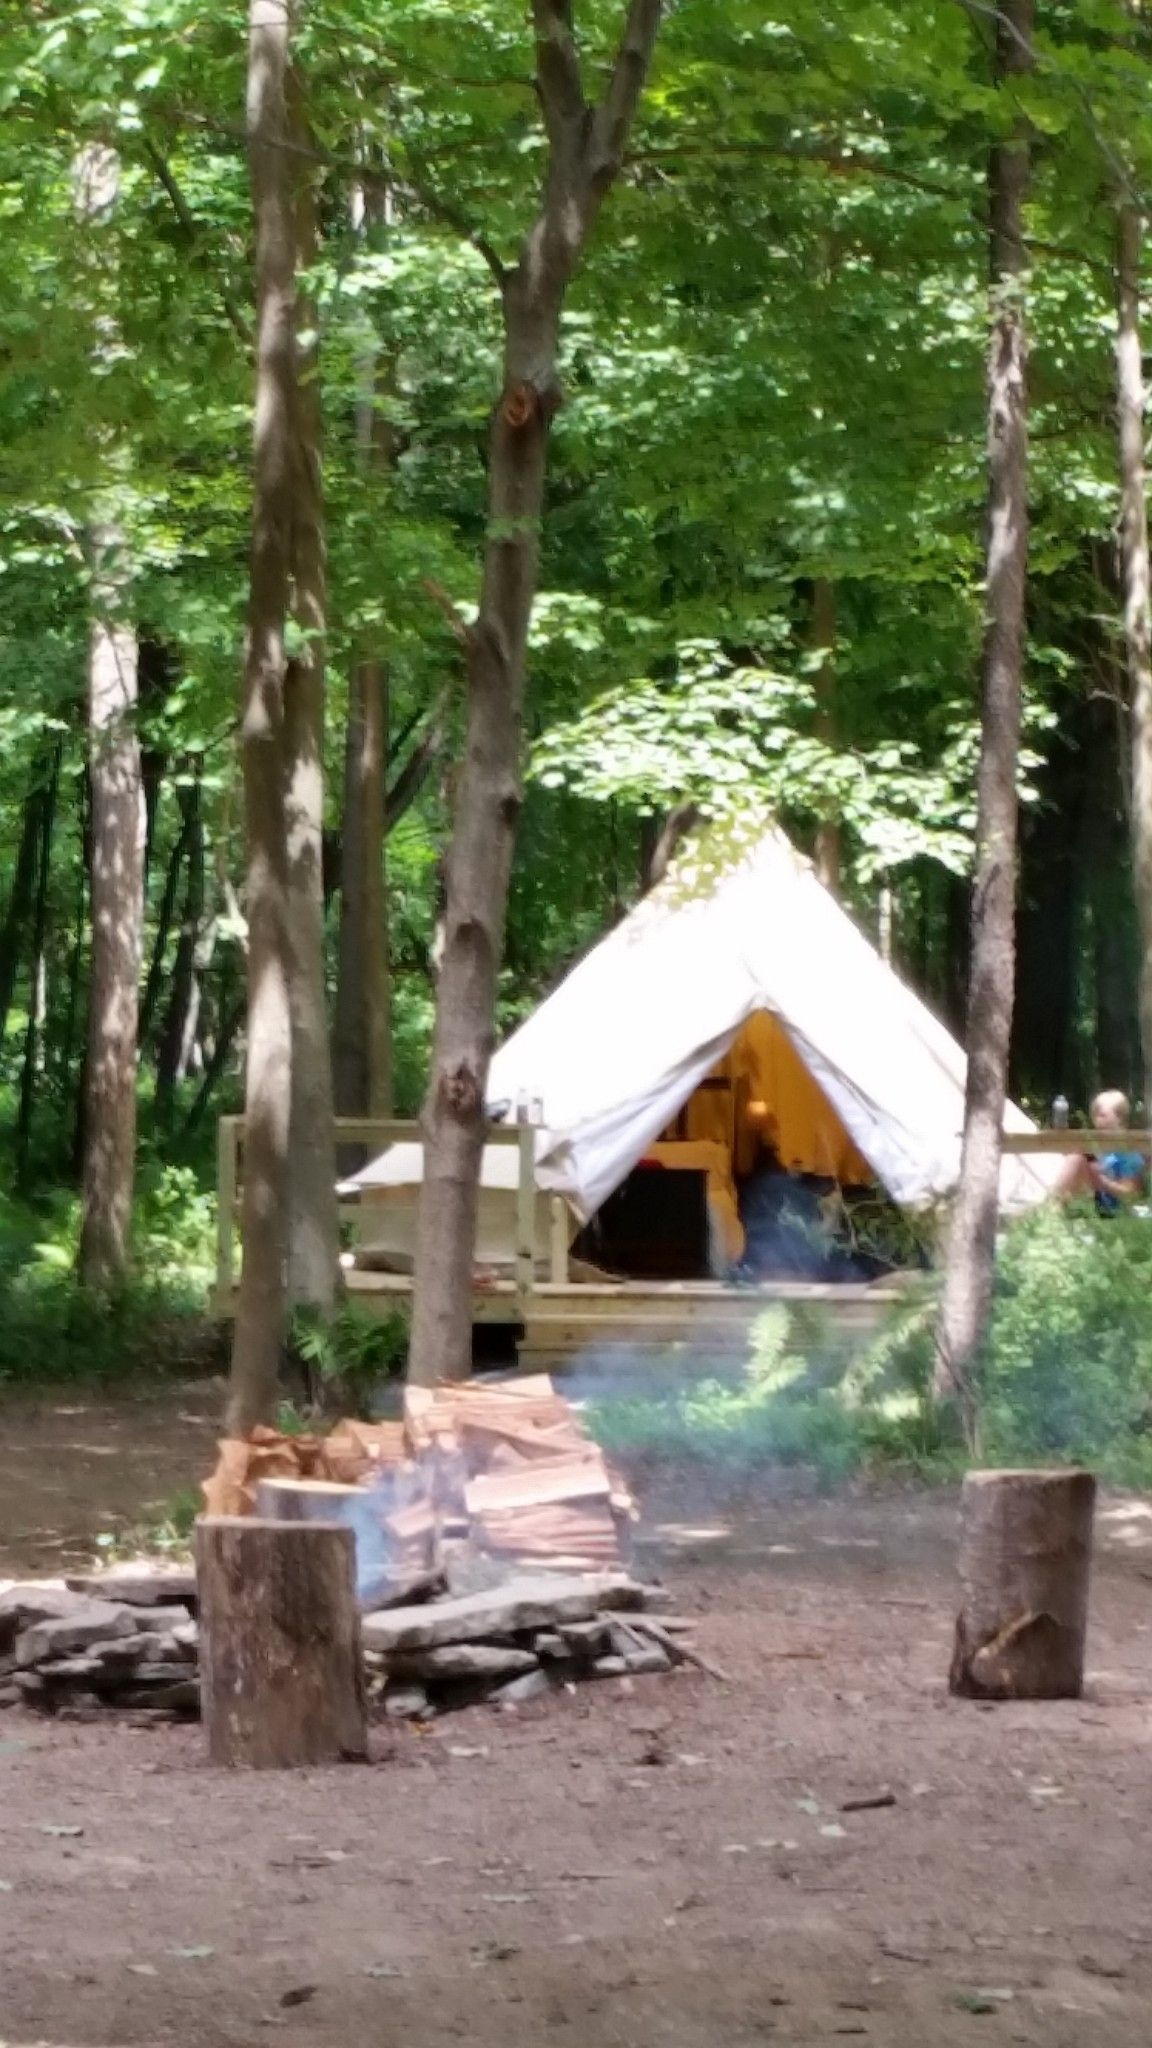 Shawnee Island Gl&ing - Pennsylvania USA - #gl&ing in bell tents on the Delaware & Shawnee Island Glamping - Pennsylvania USA - #glamping in bell ...